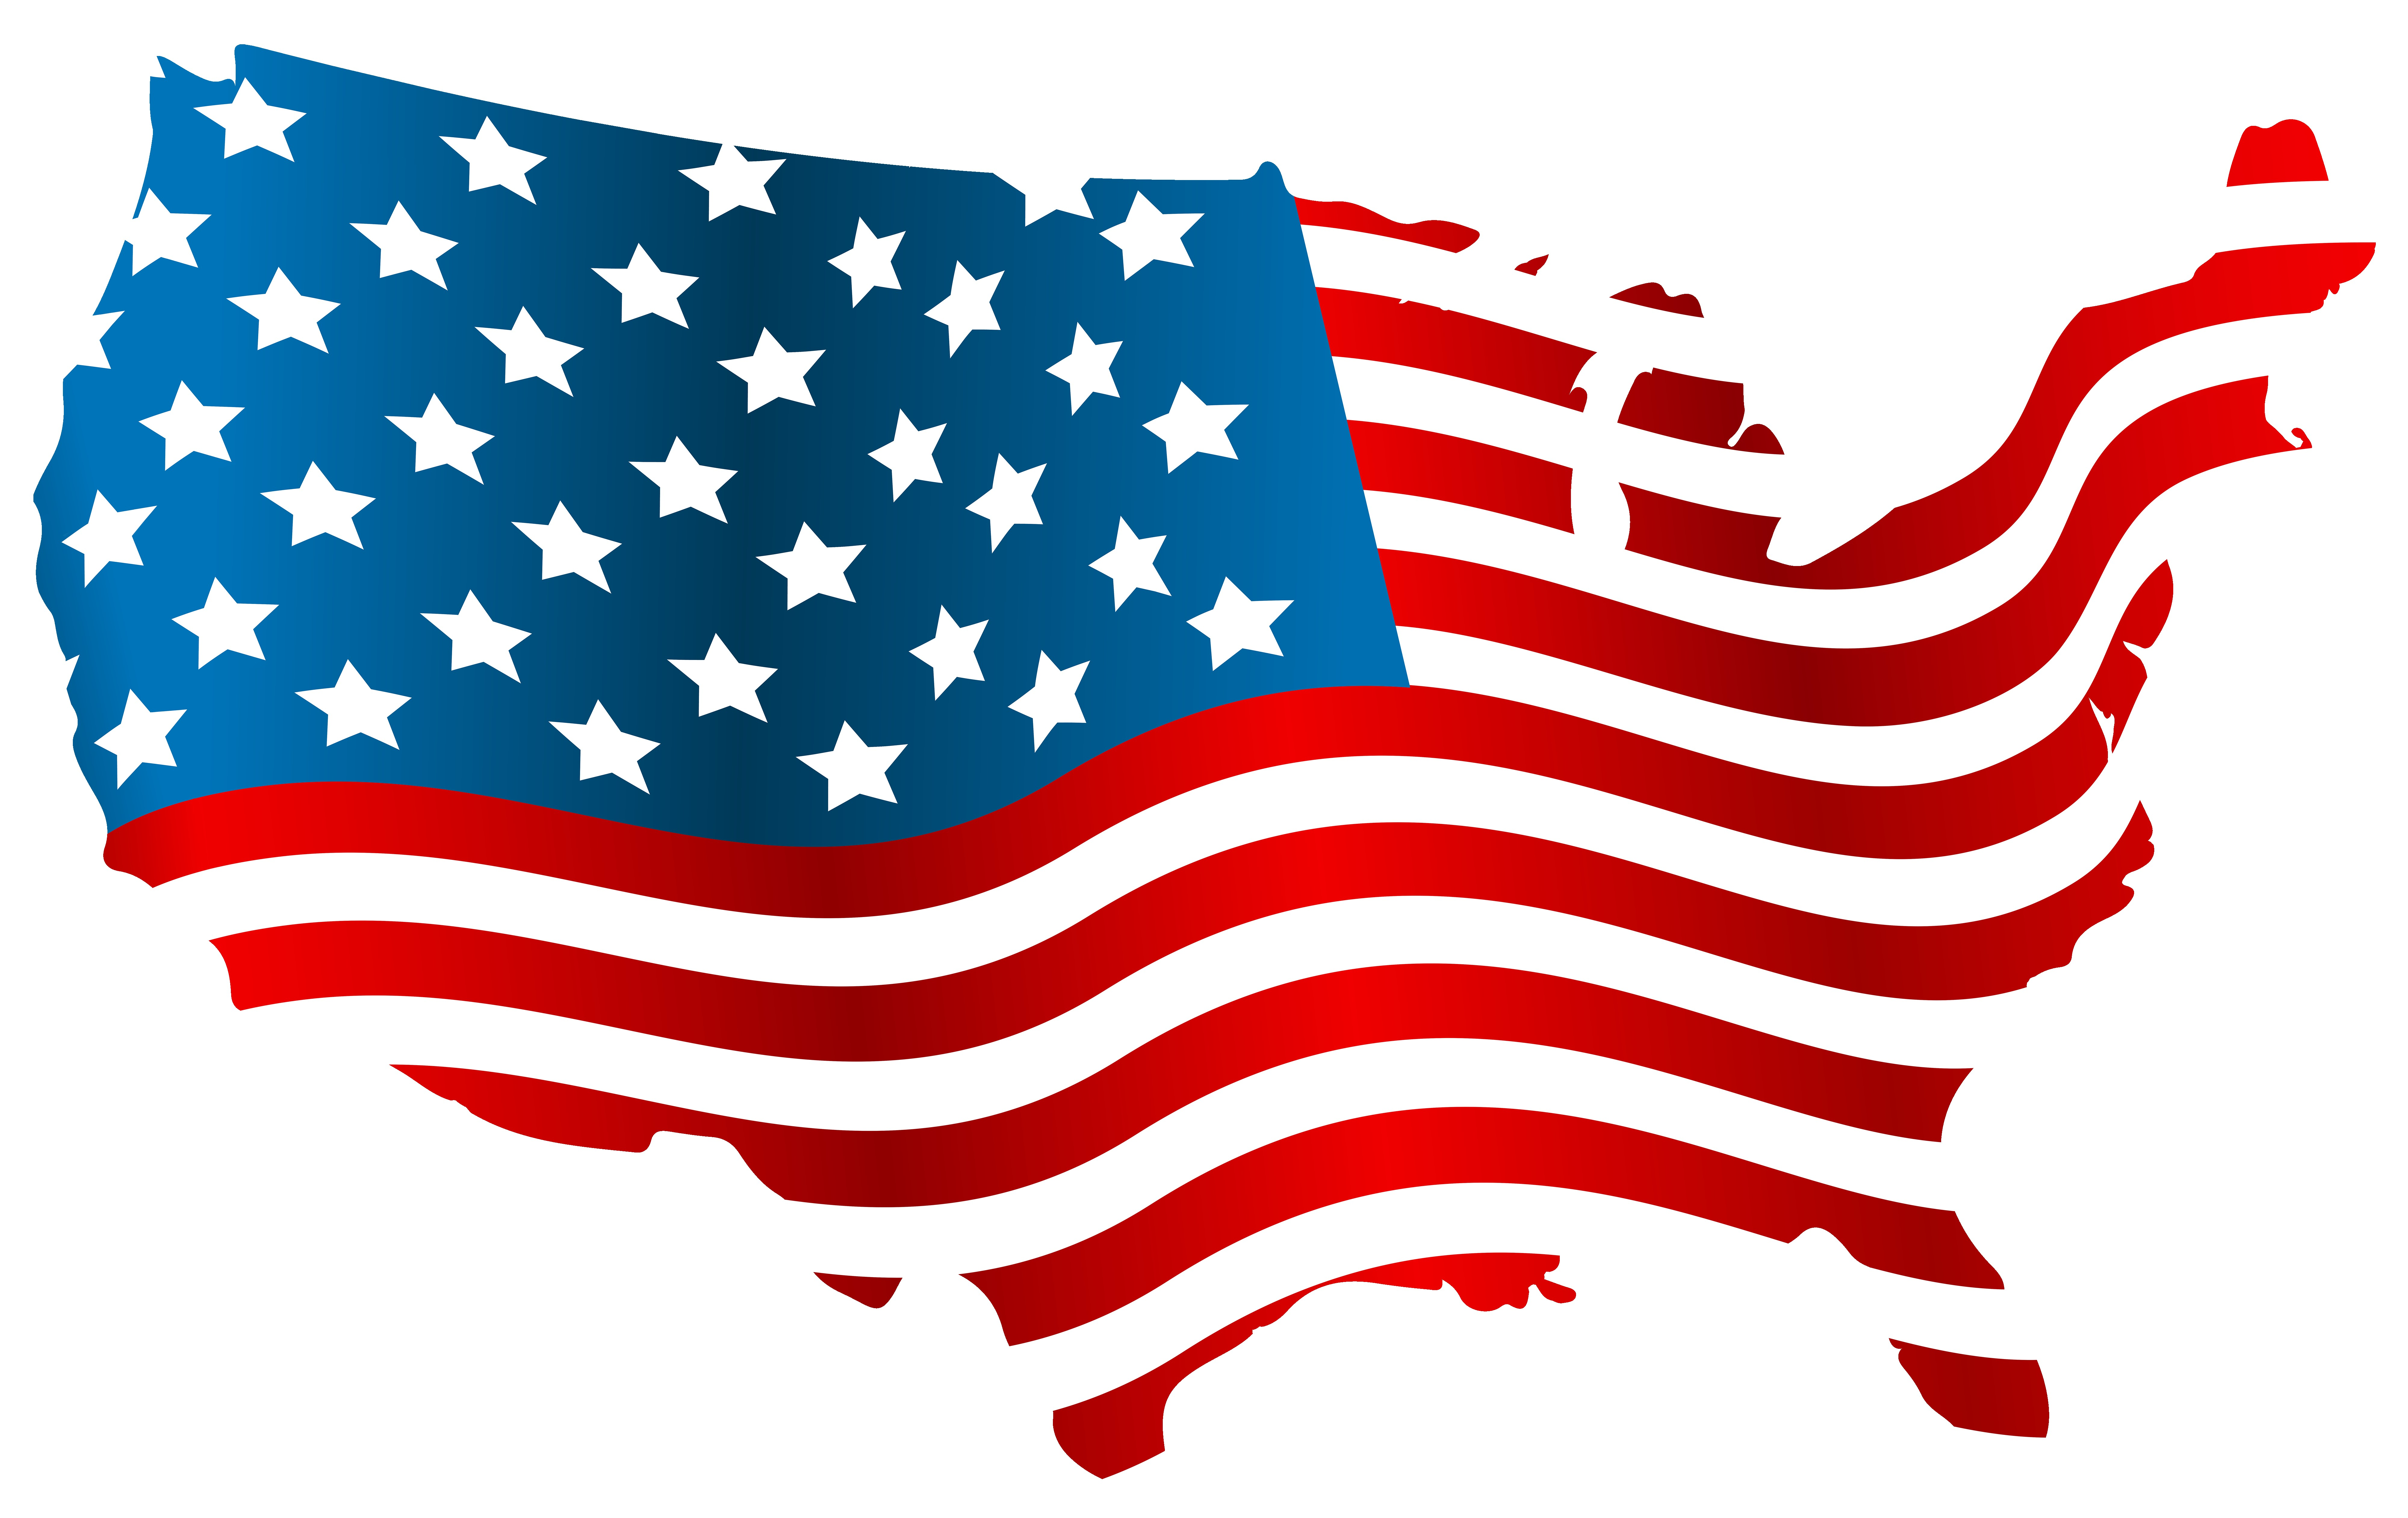 8000x5042 Usa Flag Map Png Clip Art Image Gallery Yopriceville High Endear